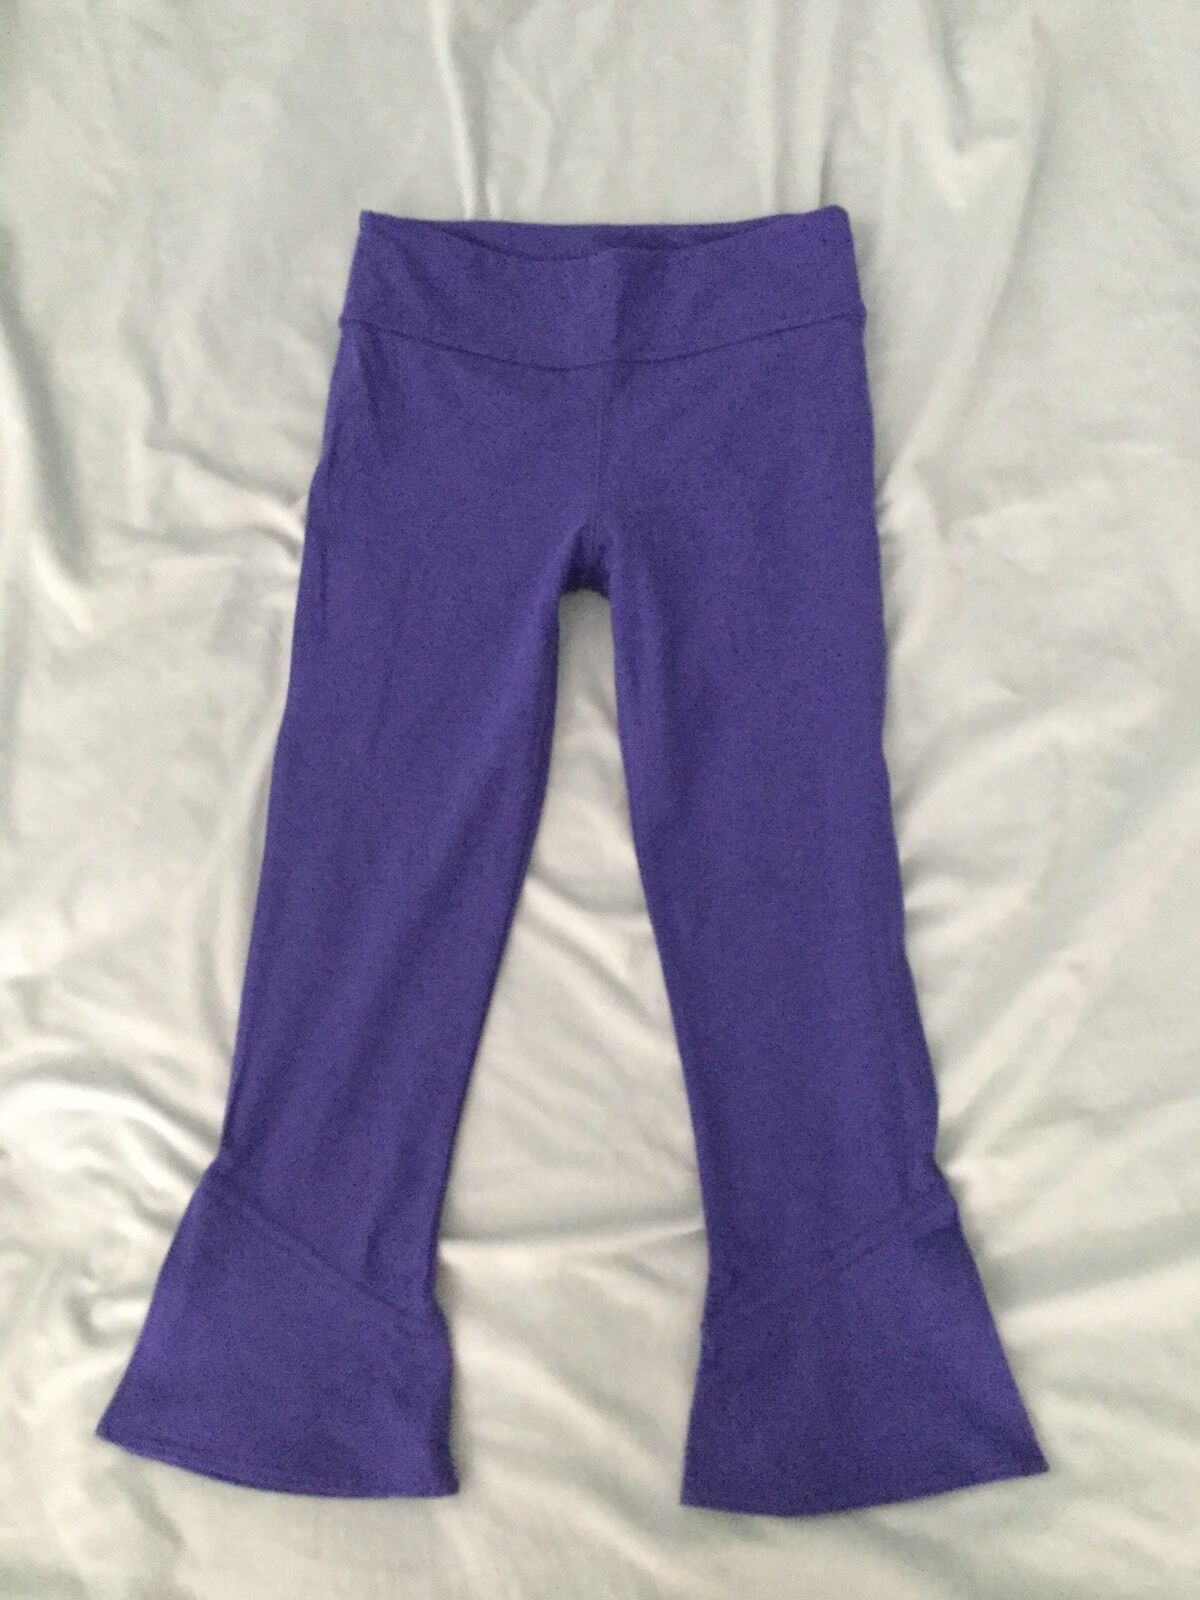 NEW Free People Movement Flared Cropped Active Leggings Size XS S Purple